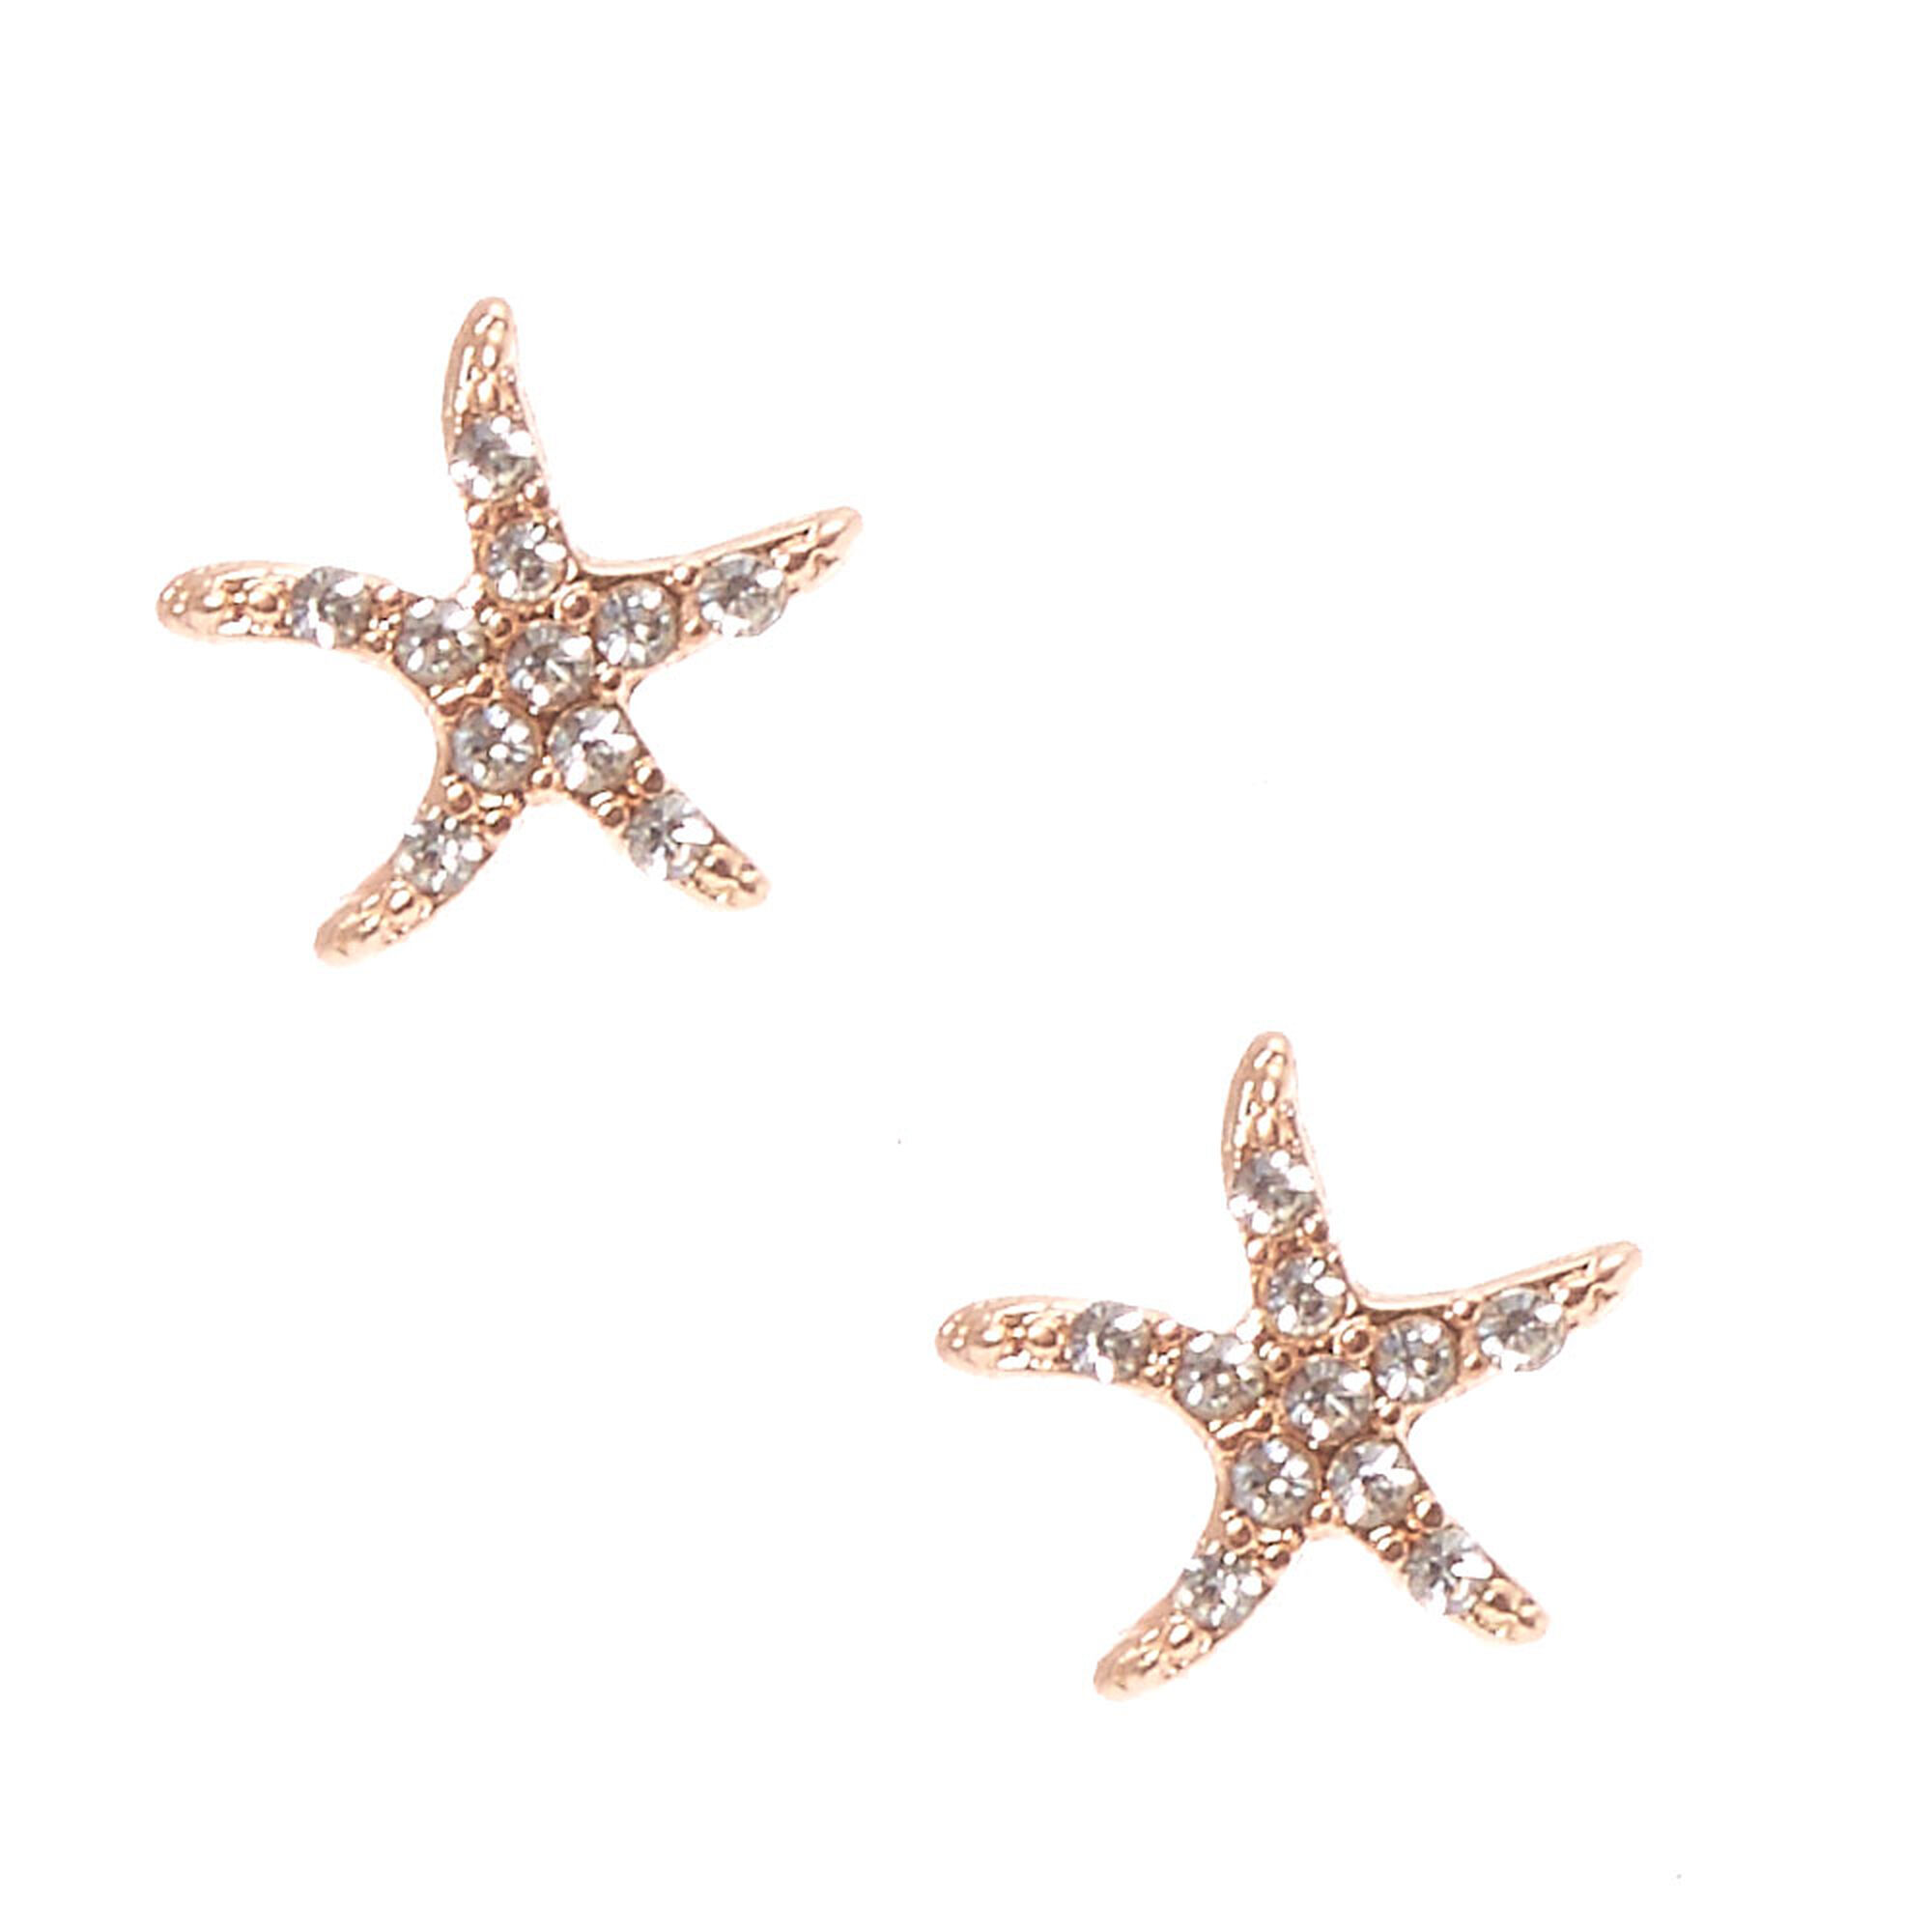 earrings with tidepools feature five sterling silver starfish products this aeravida cool exploring beautiful wavy these its oceans stud details amazing world adorable plain pe feet star wanders creature the worlds of